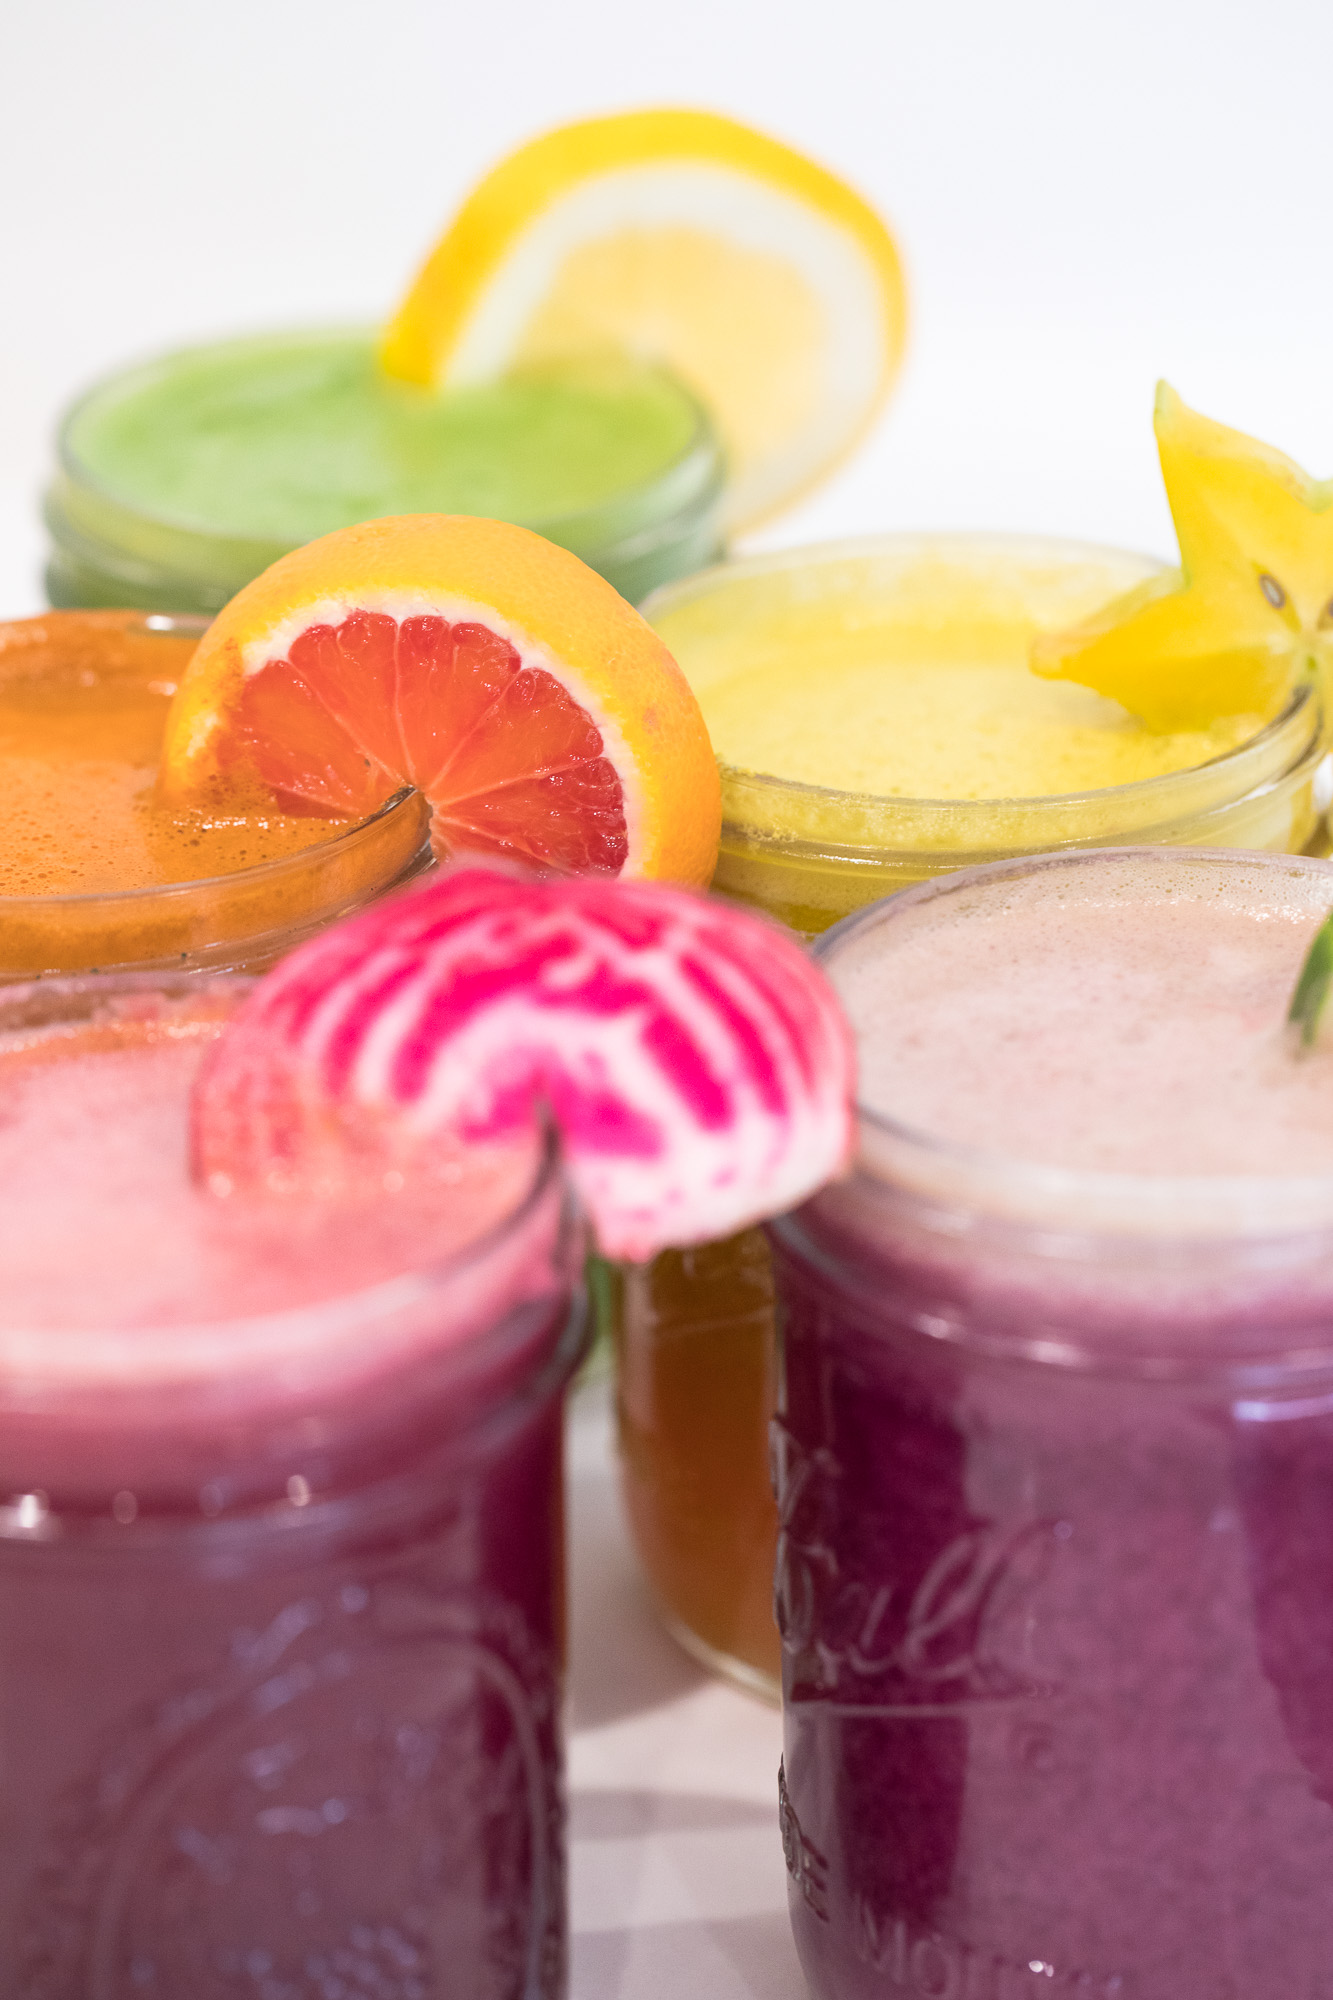 Maka-cafe-fresh-juices-collection-2.jpg